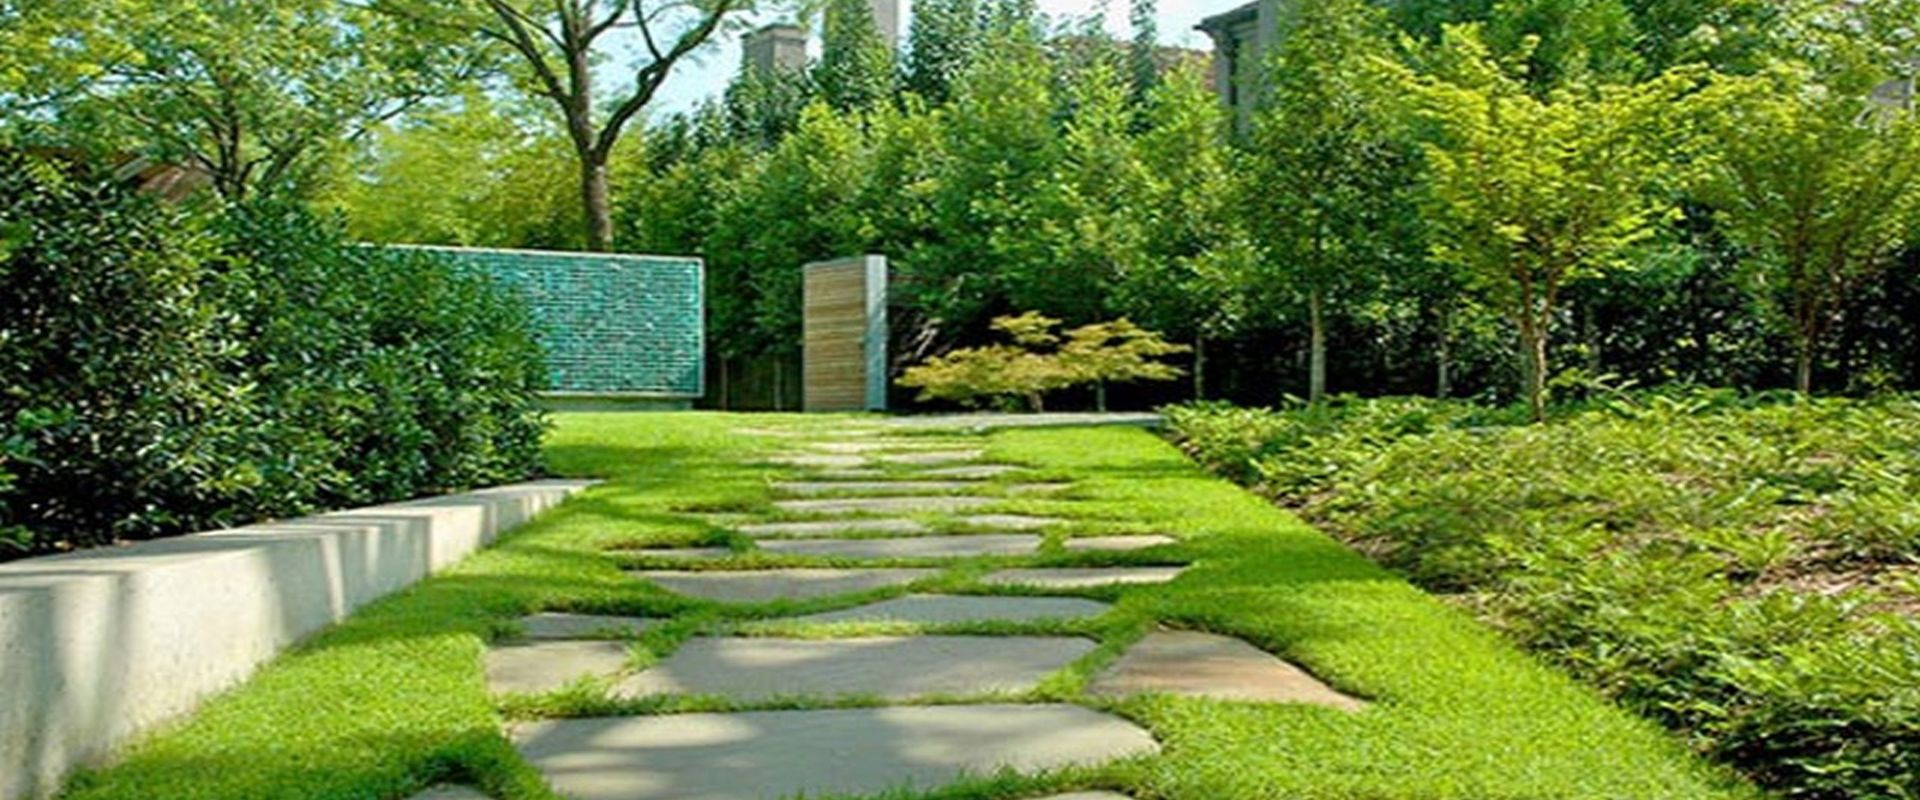 Landscaping Companies In Uae Offer Splendid Services In